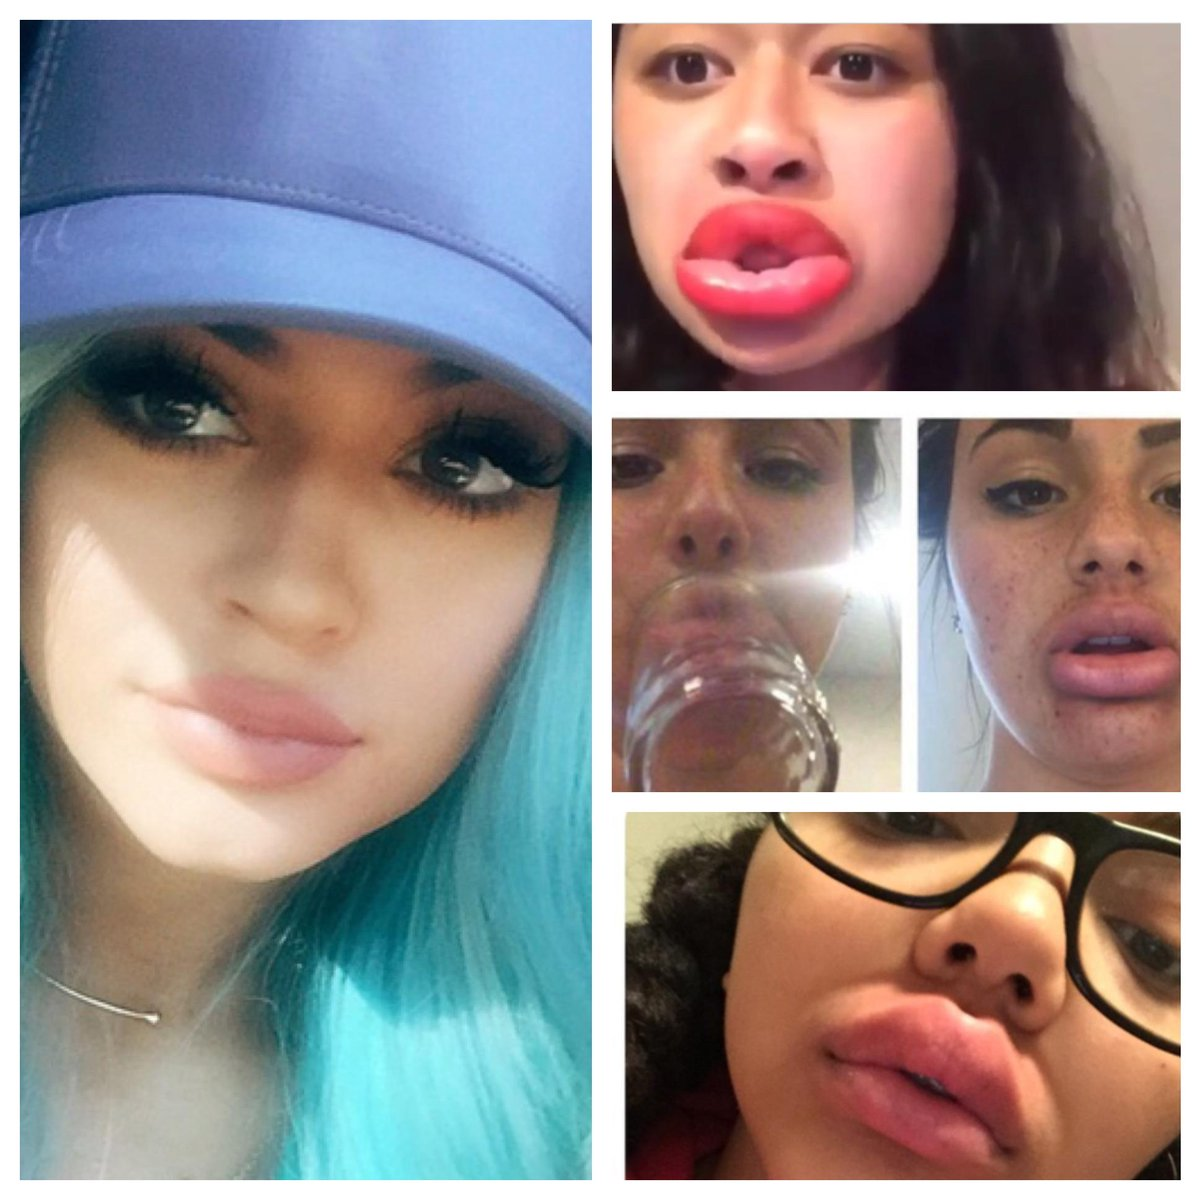 Girls!  Please stop the #kyliejennerchallenge. Learning to love urself takes time & shortcuts don't work #wtsp 11pm http://t.co/bcSbyESiCK